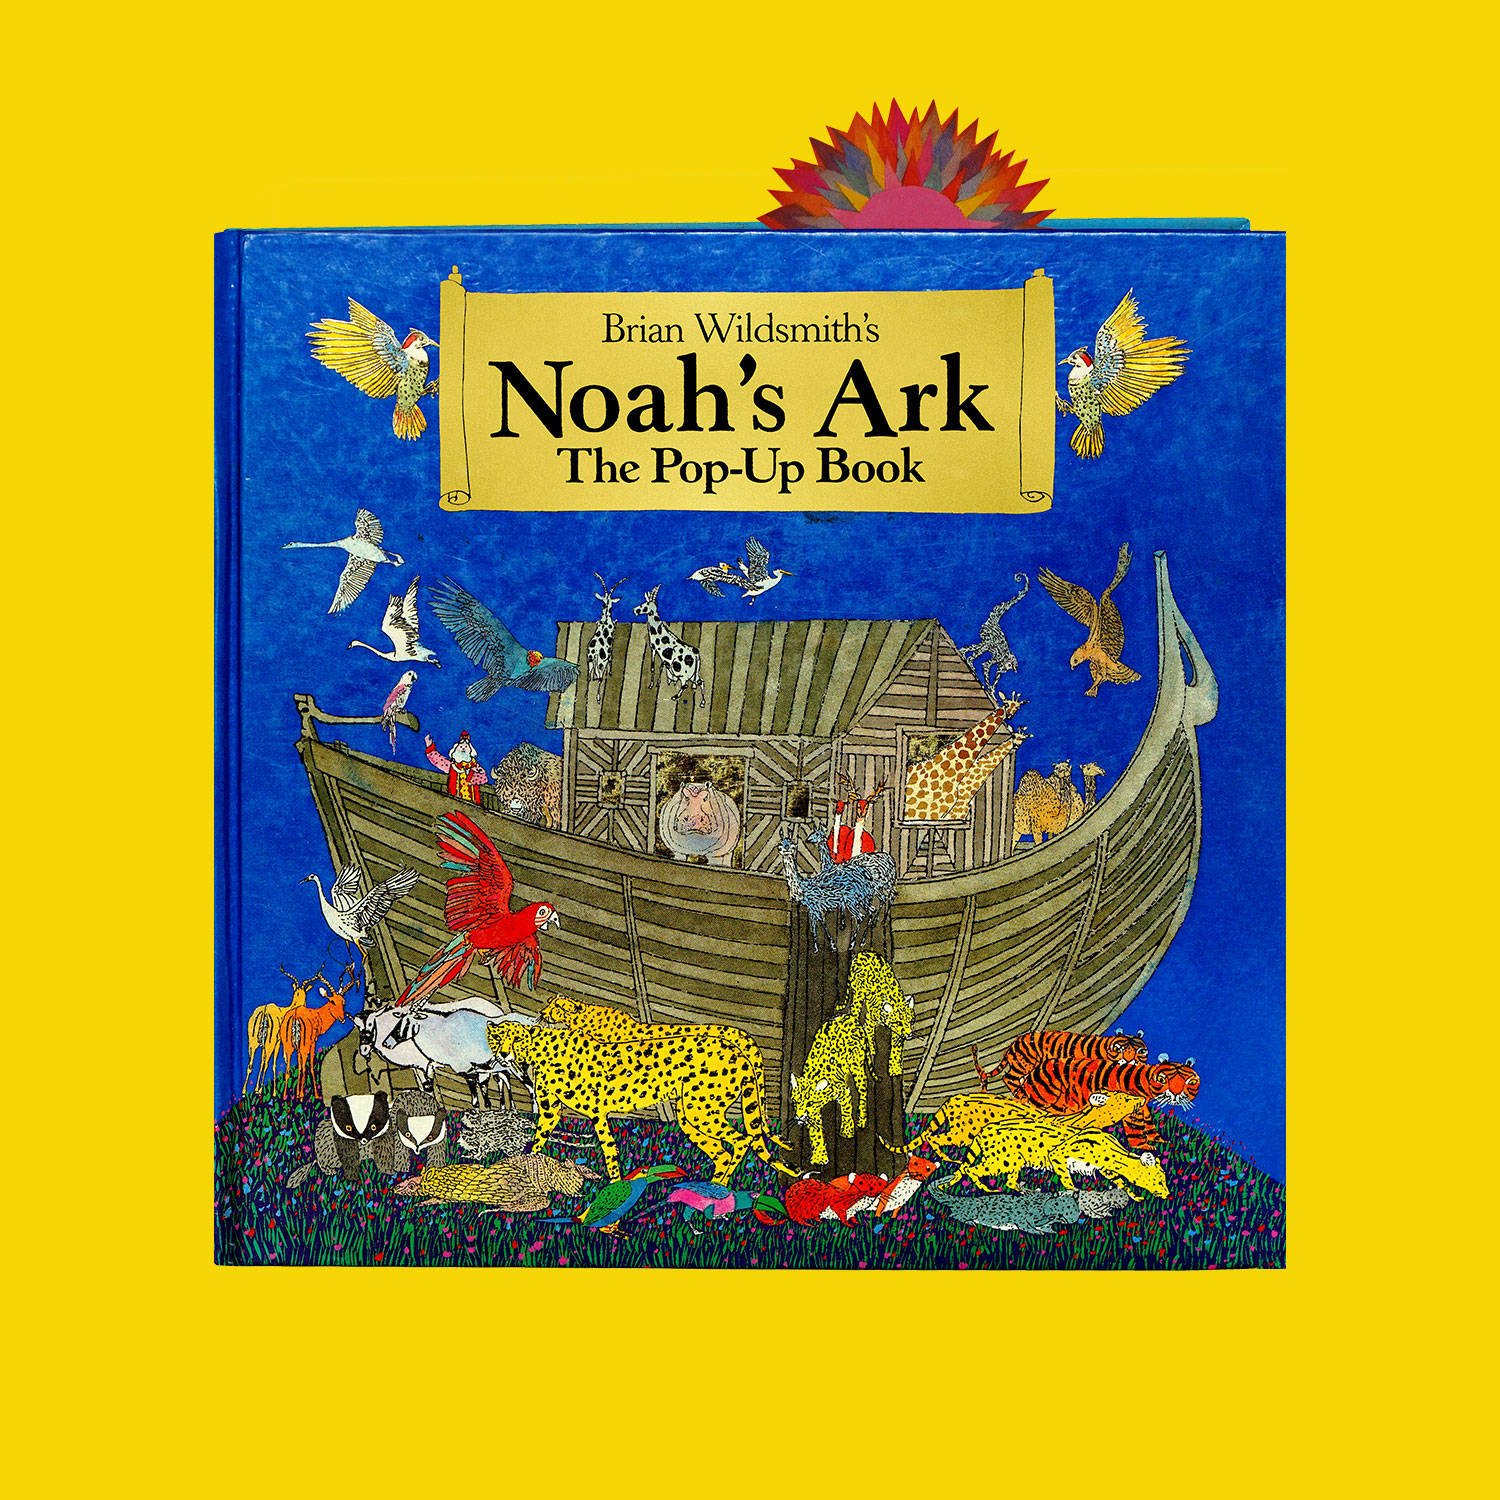 """NOAH'S ARK - 1994""""When an artist of Brian Wildsmith's eminence enters the world of pop-up something special is indicated, and so it is. While many of the effects must be credited to the paper engineer, Wildsmith has plenty of his own. In particular as ark and sea, dove and rainbow rise up from the page, they can be viewed as rewardingly from the back as the front and the utilitarian tabs which operate some of the gadgetry are in themselves small works of art. Each of the five pop-up spreads has its surprise. Pelican and elephant help to load the ark. Noah's family act as a welcoming party as the animals enter. Lightening flashes across a stormy sky. A typical Wildsmith's sun breaks through the clouds as the dove returns. Sun and rainbow join in benediction over Ararat. Pop-up collectors will want this one…""""Junior Bookshelf"""